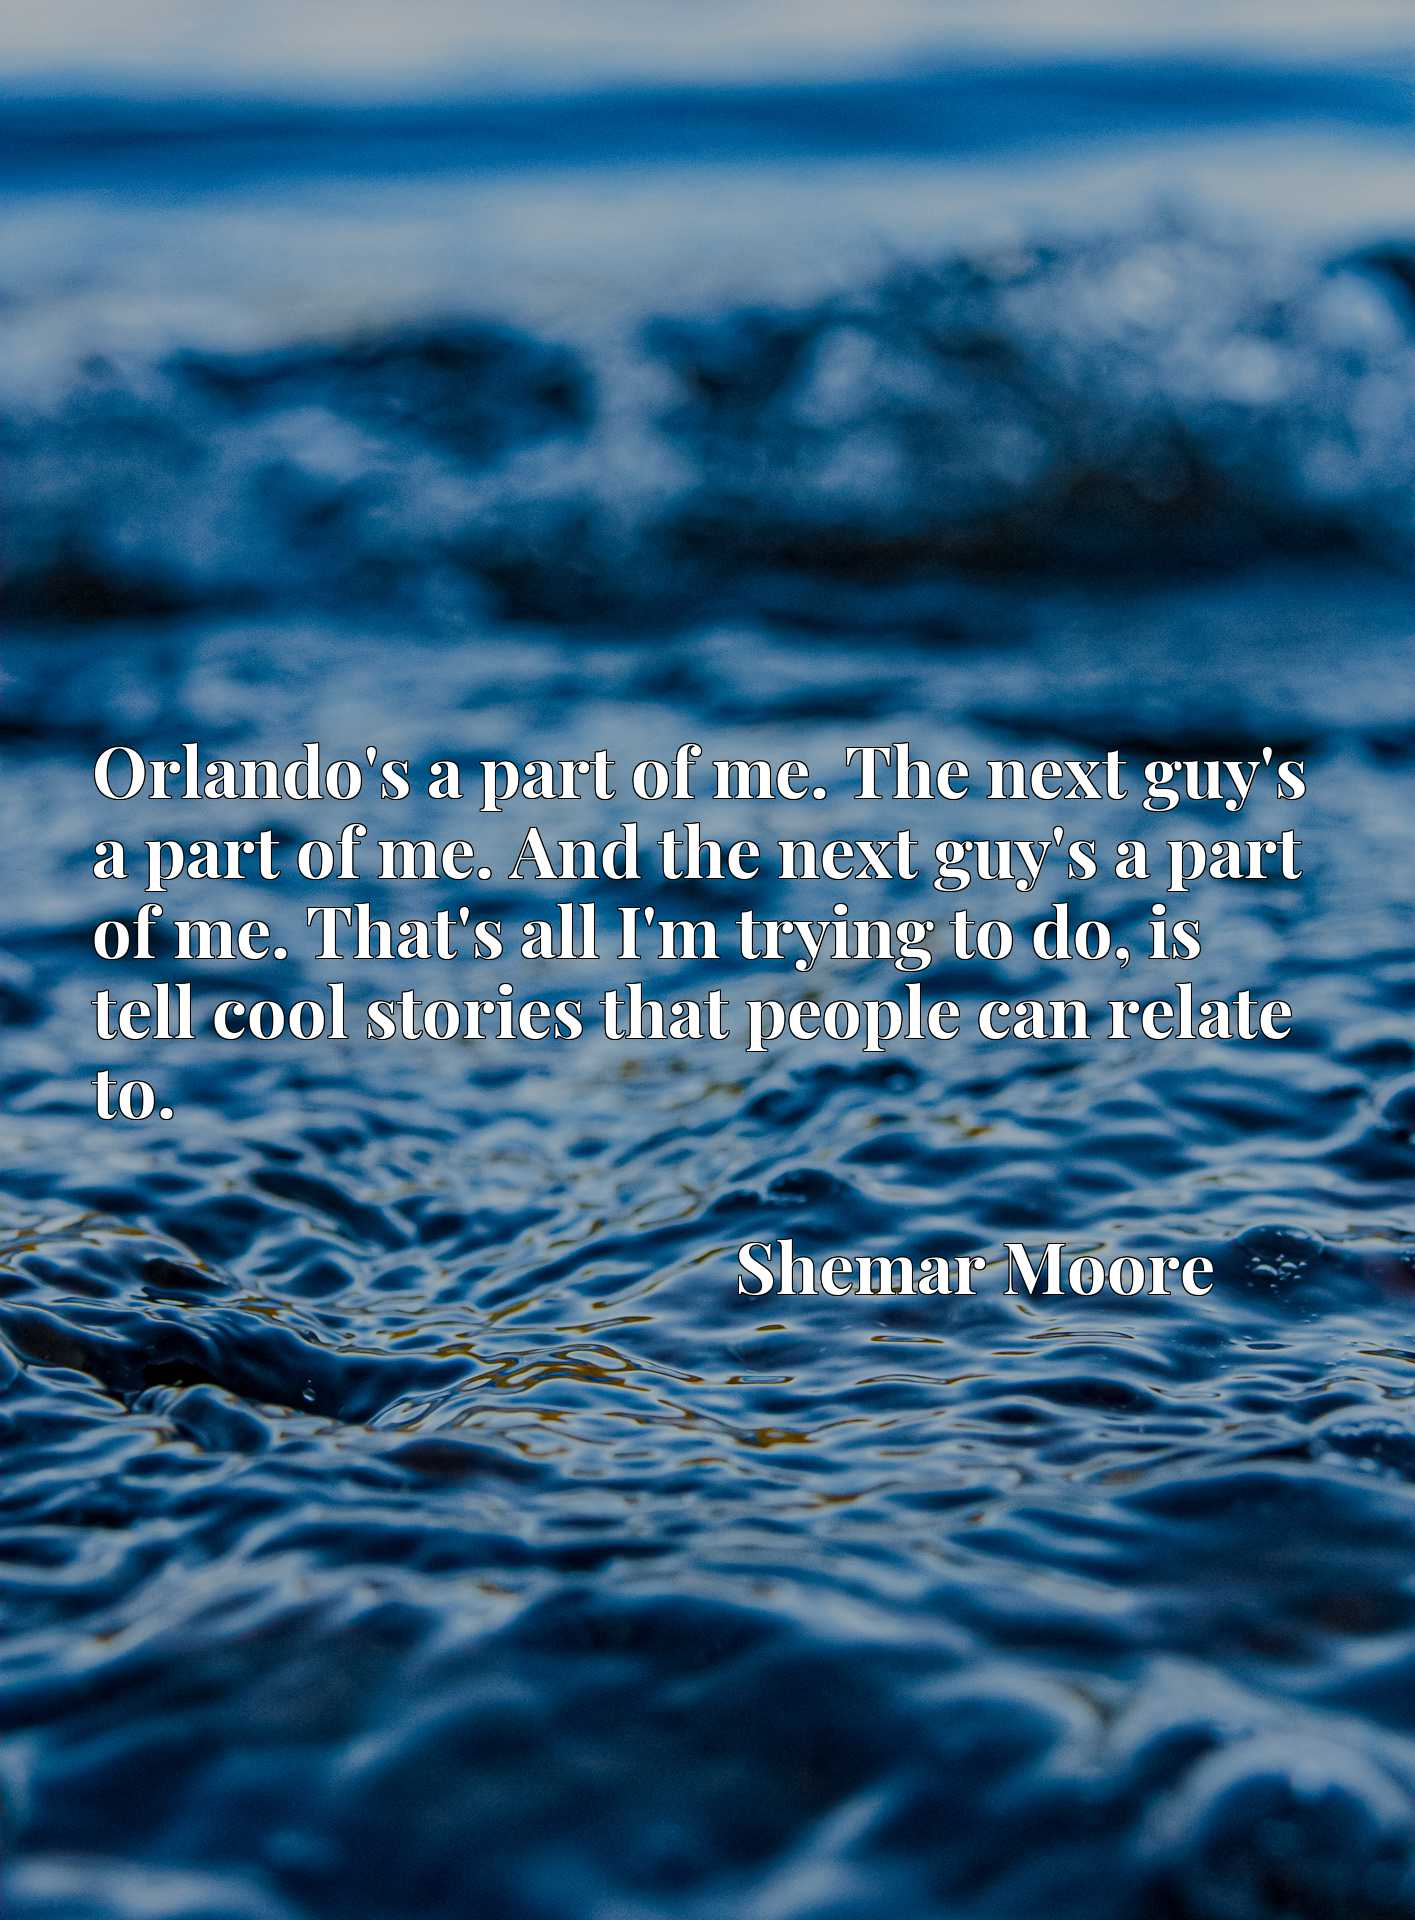 Orlando's a part of me. The next guy's a part of me. And the next guy's a part of me. That's all I'm trying to do, is tell cool stories that people can relate to.